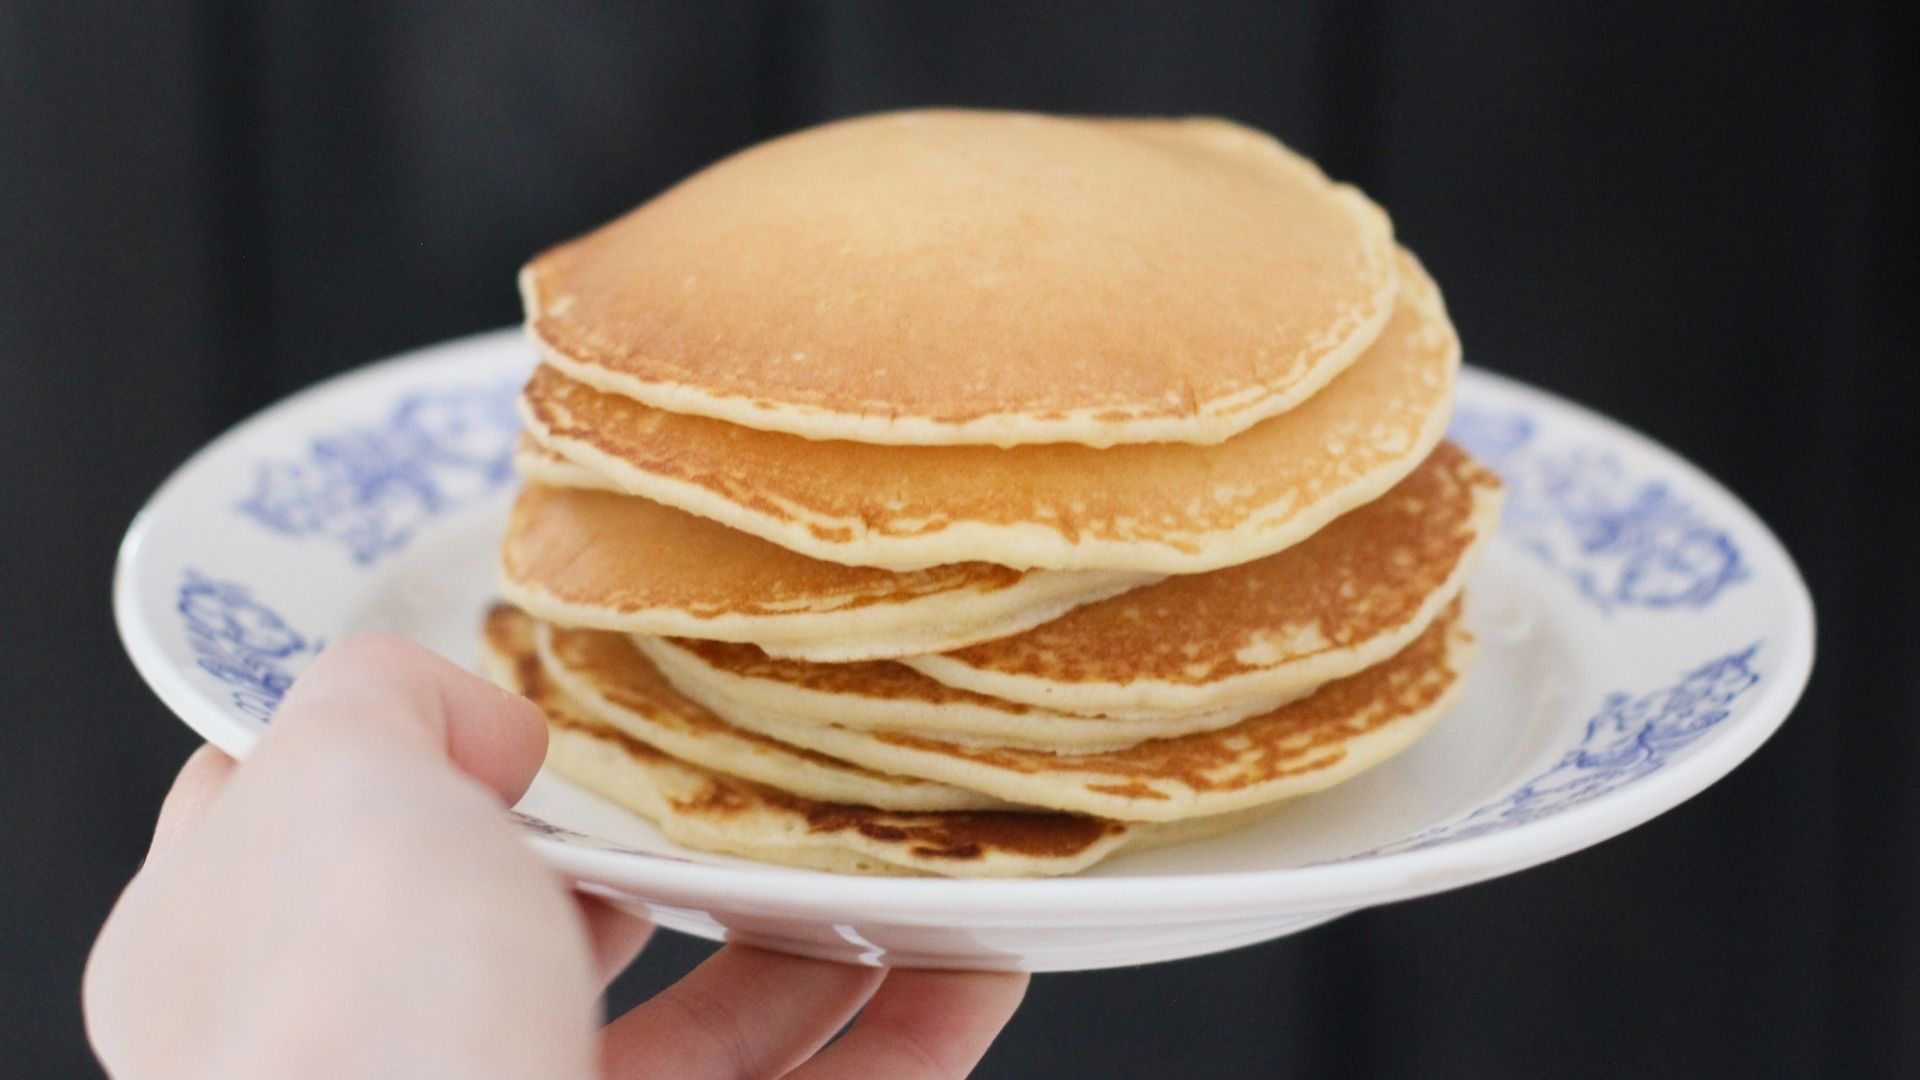 01 Protein Pancakes - ©www.canva.com